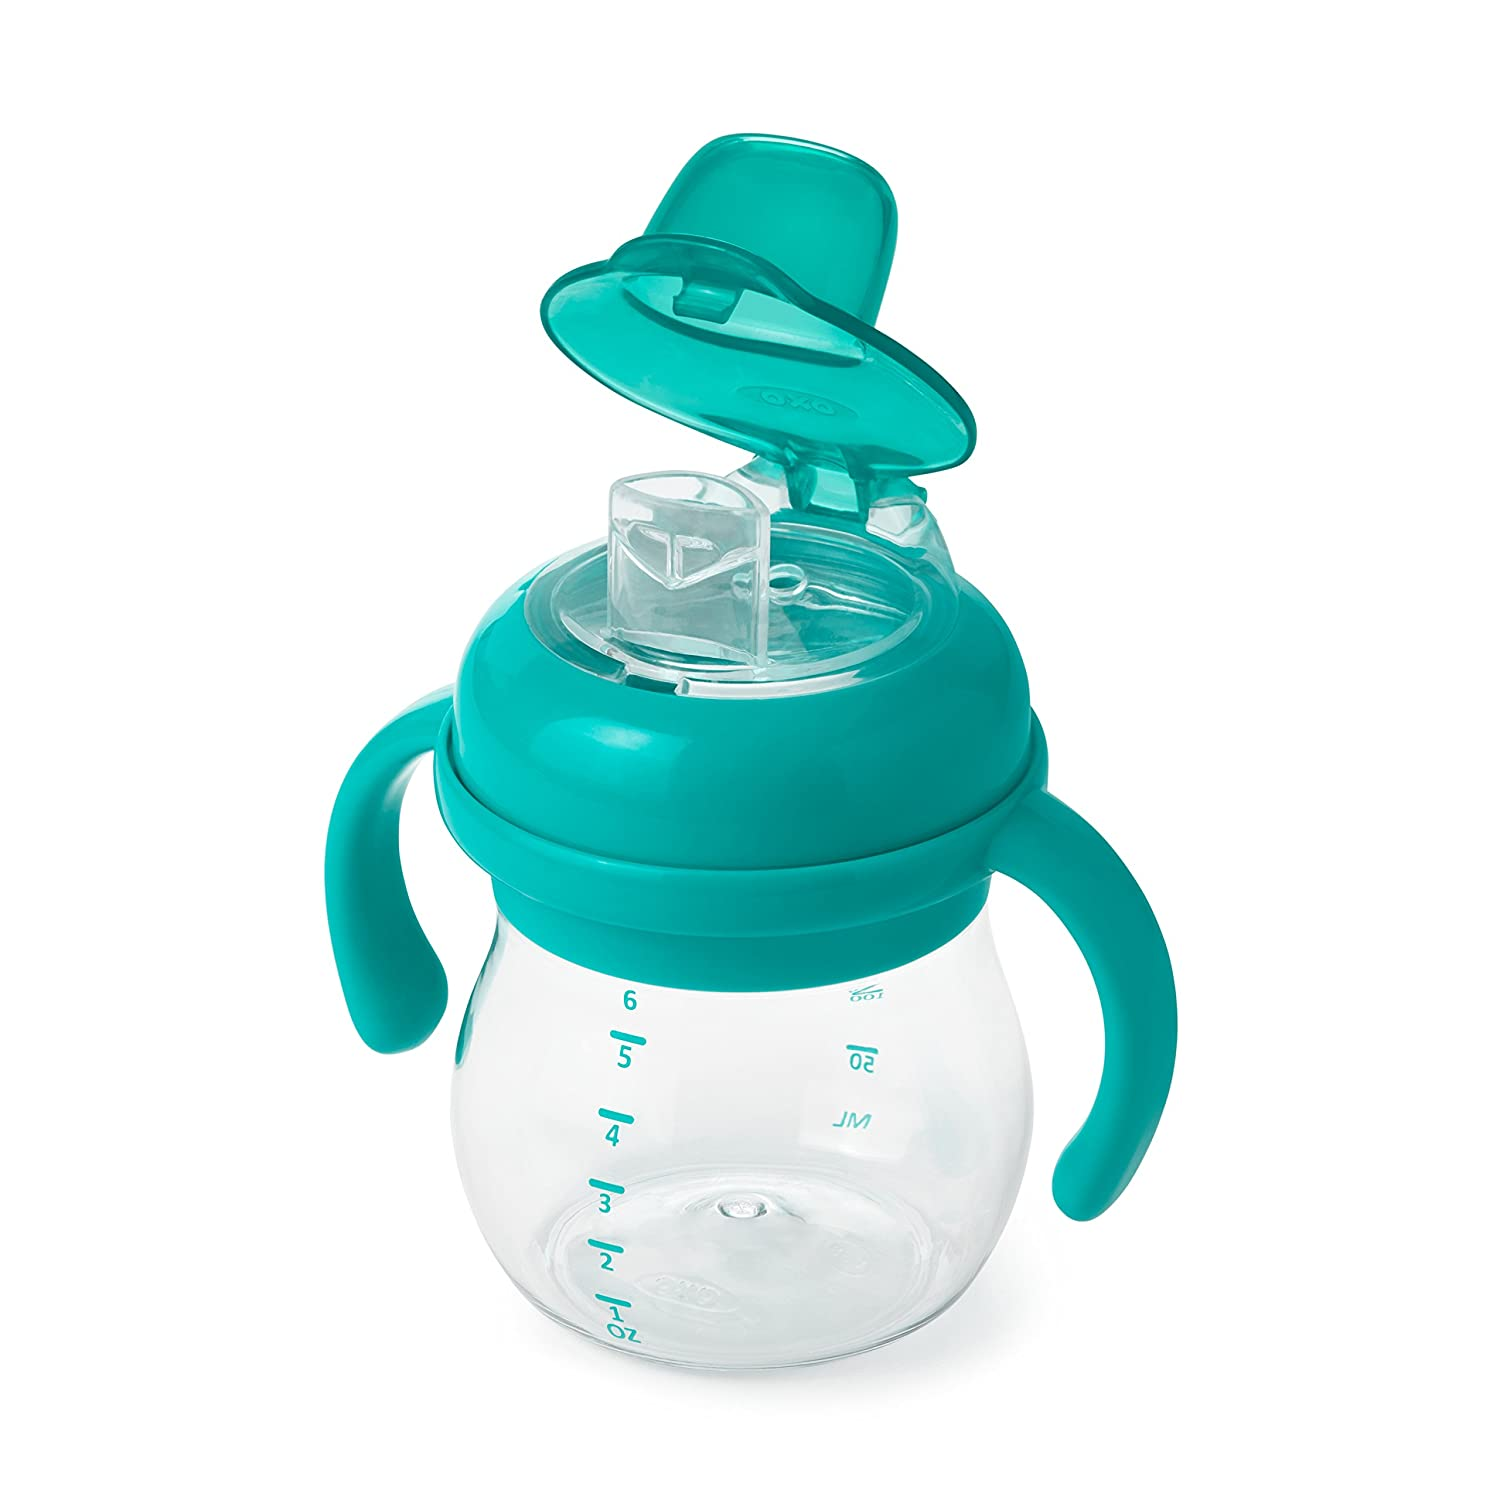 OXO Tot Transitions Soft Spout Sippy Cup With Removable Handles, Teal, 6 Ounce 61127500